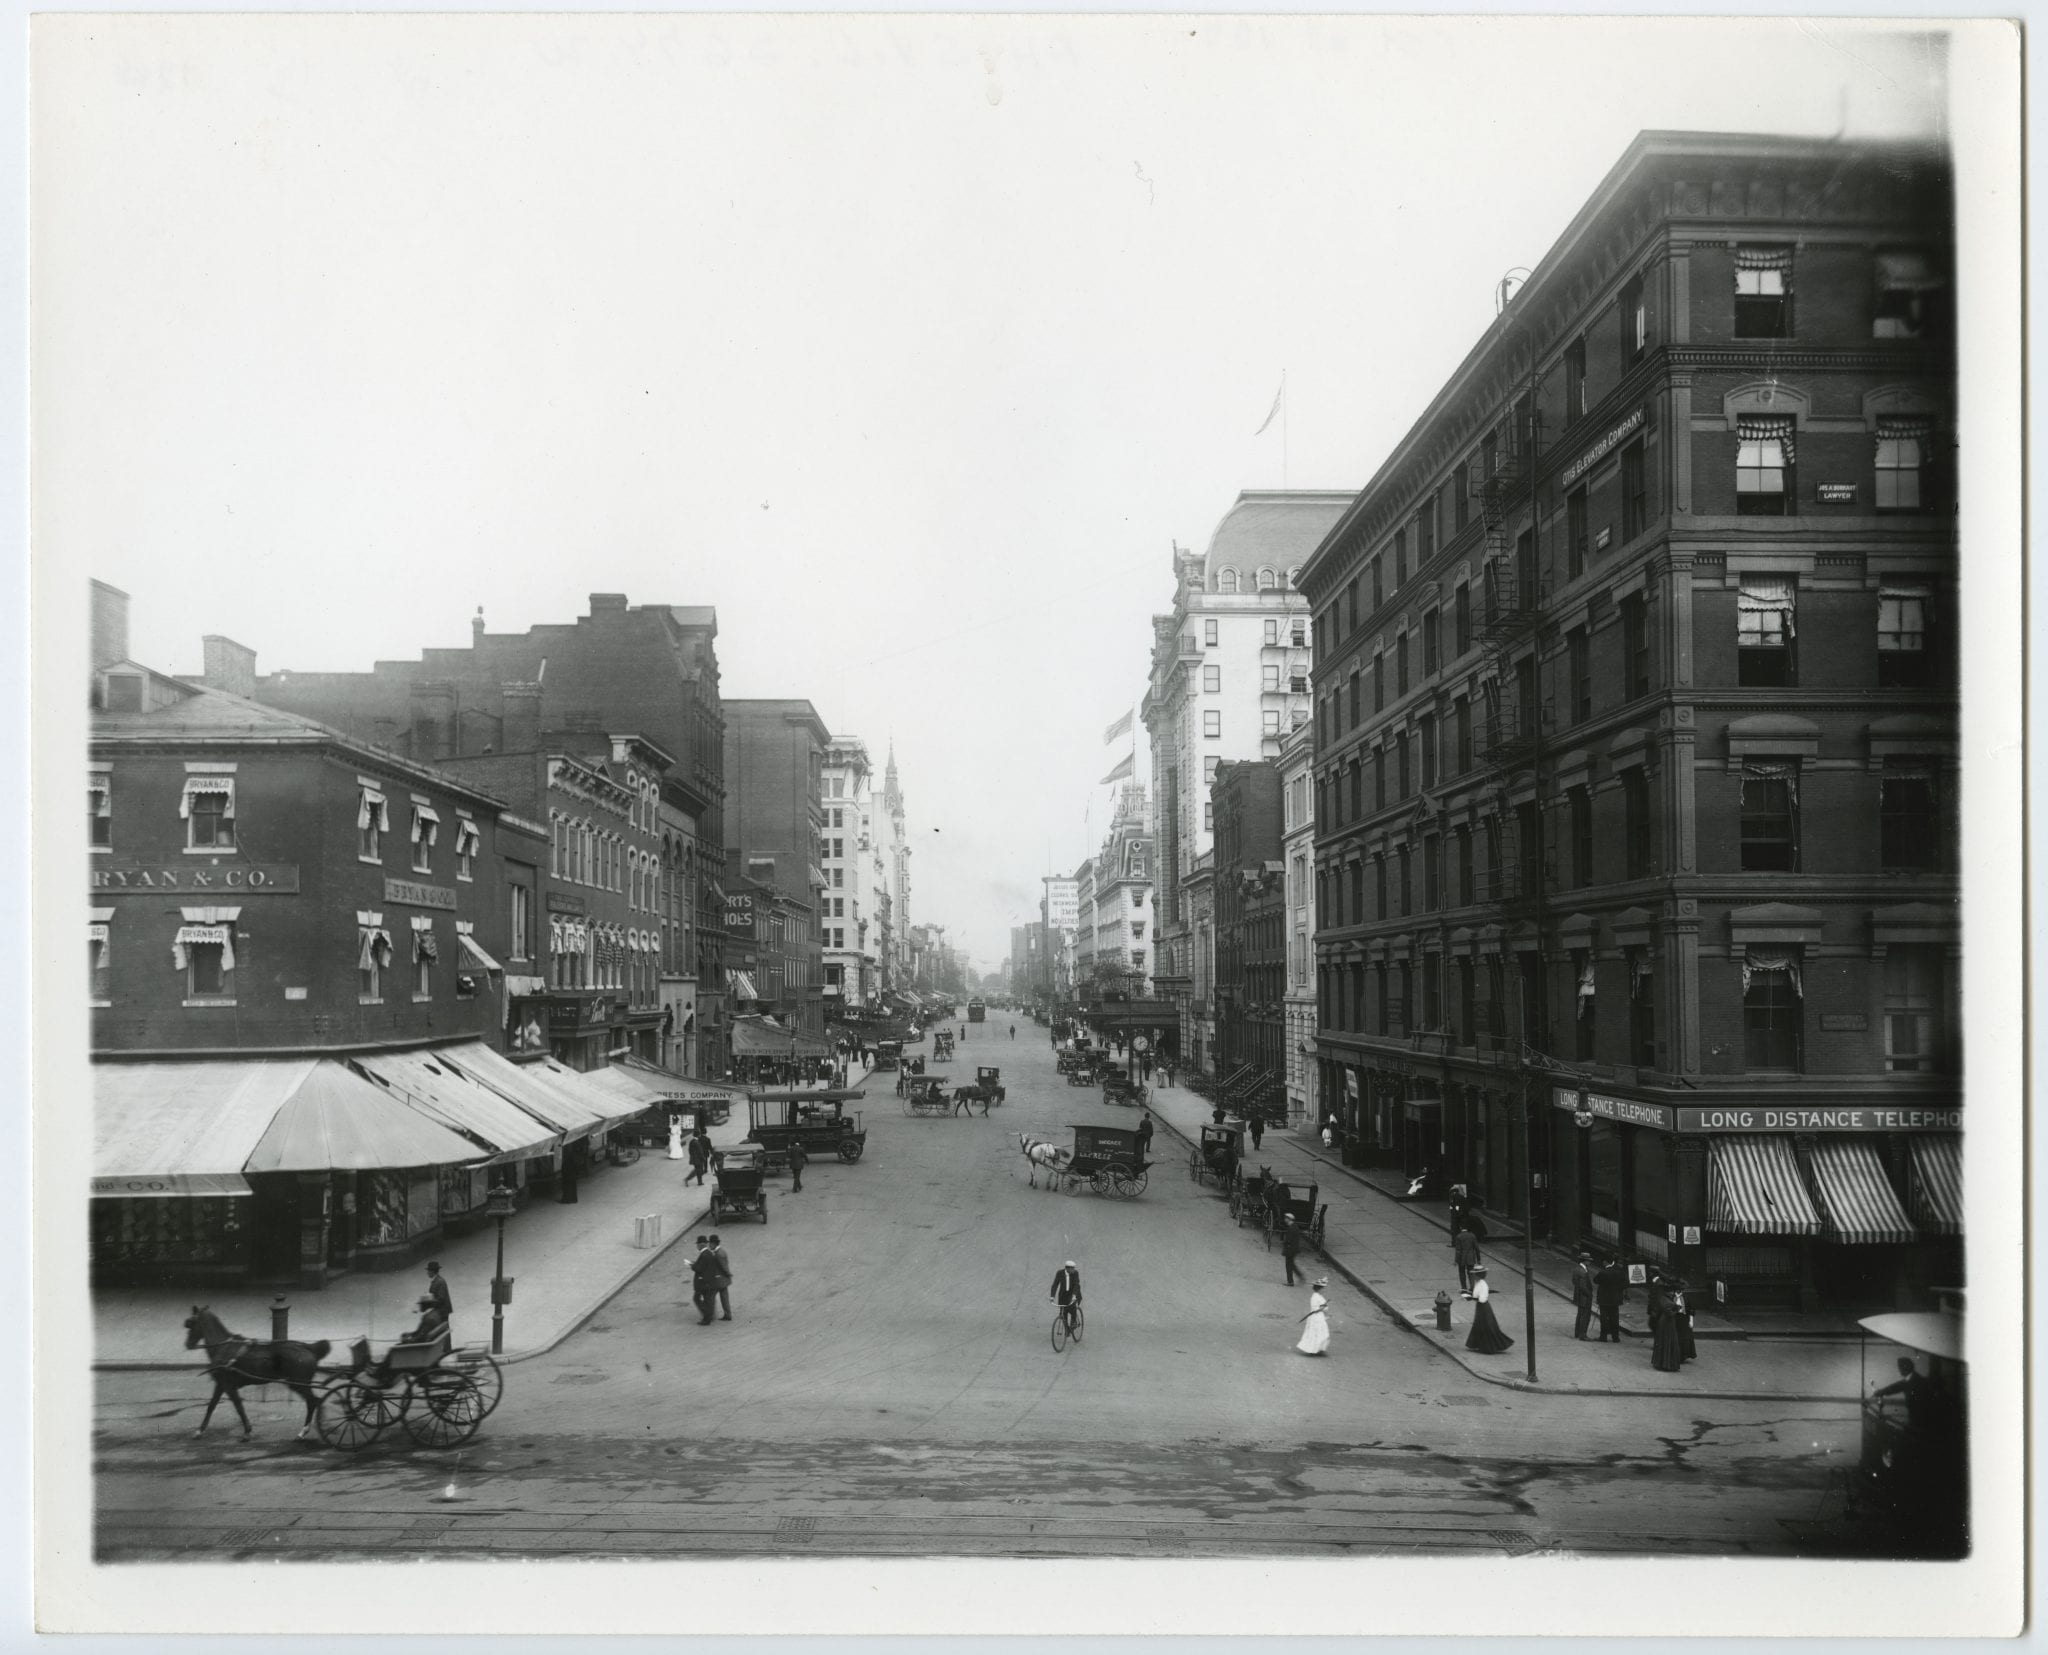 View of 15th & F Streets, NW looking east with horse carriages and a bicyclist pictured.